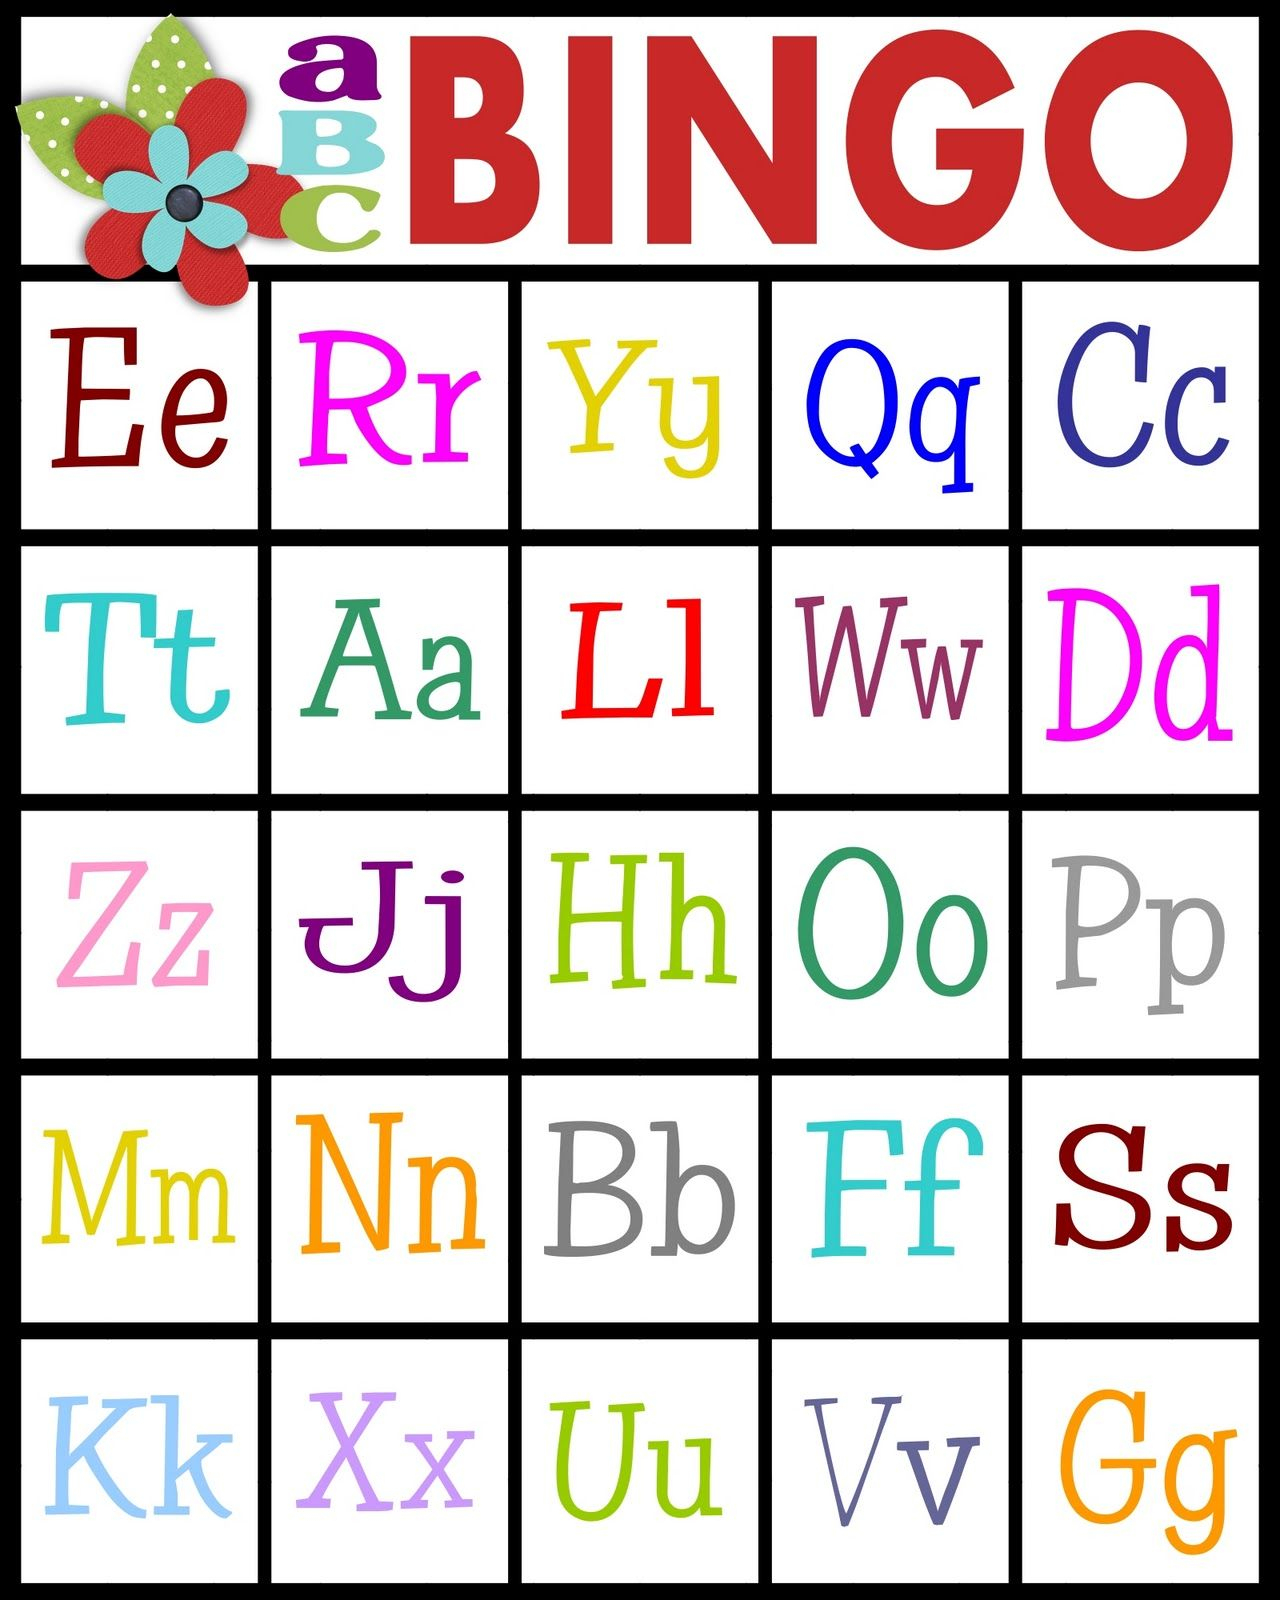 For Teaching Letter Recognition Or Letter Sounds | Home School - Free Printable Alphabet Games